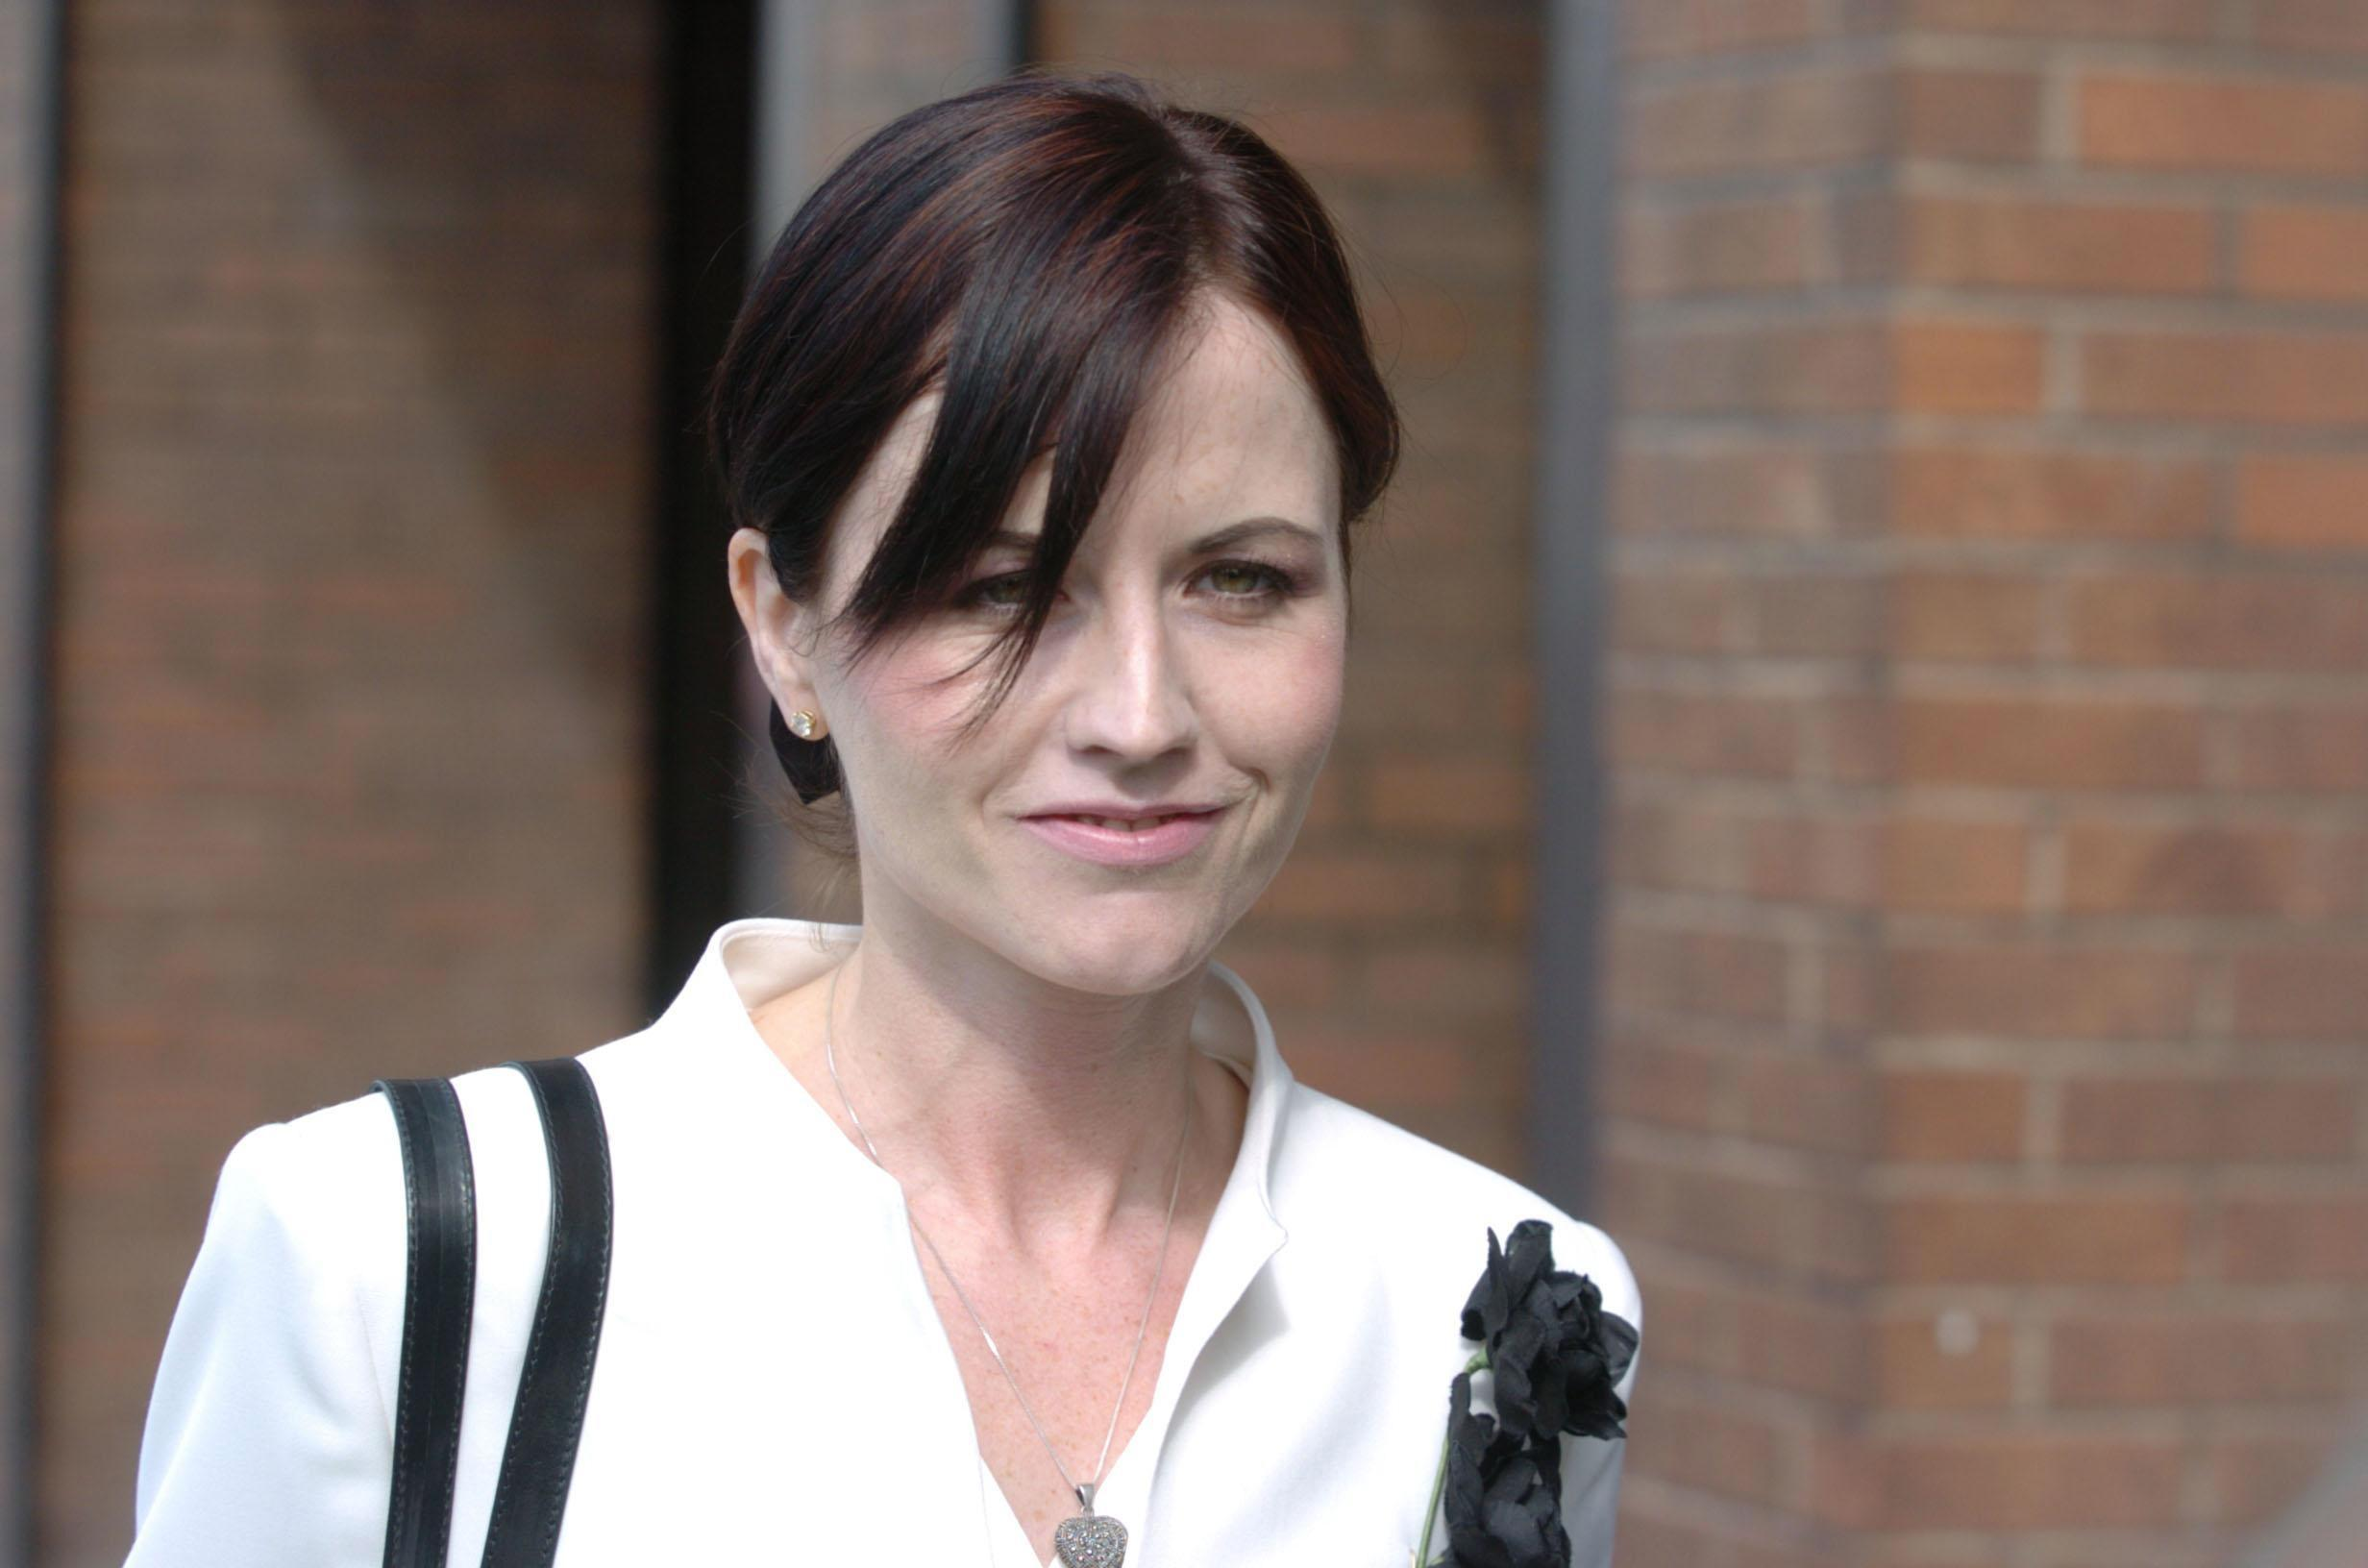 Details of Dolores O'Riordan's funeral announced